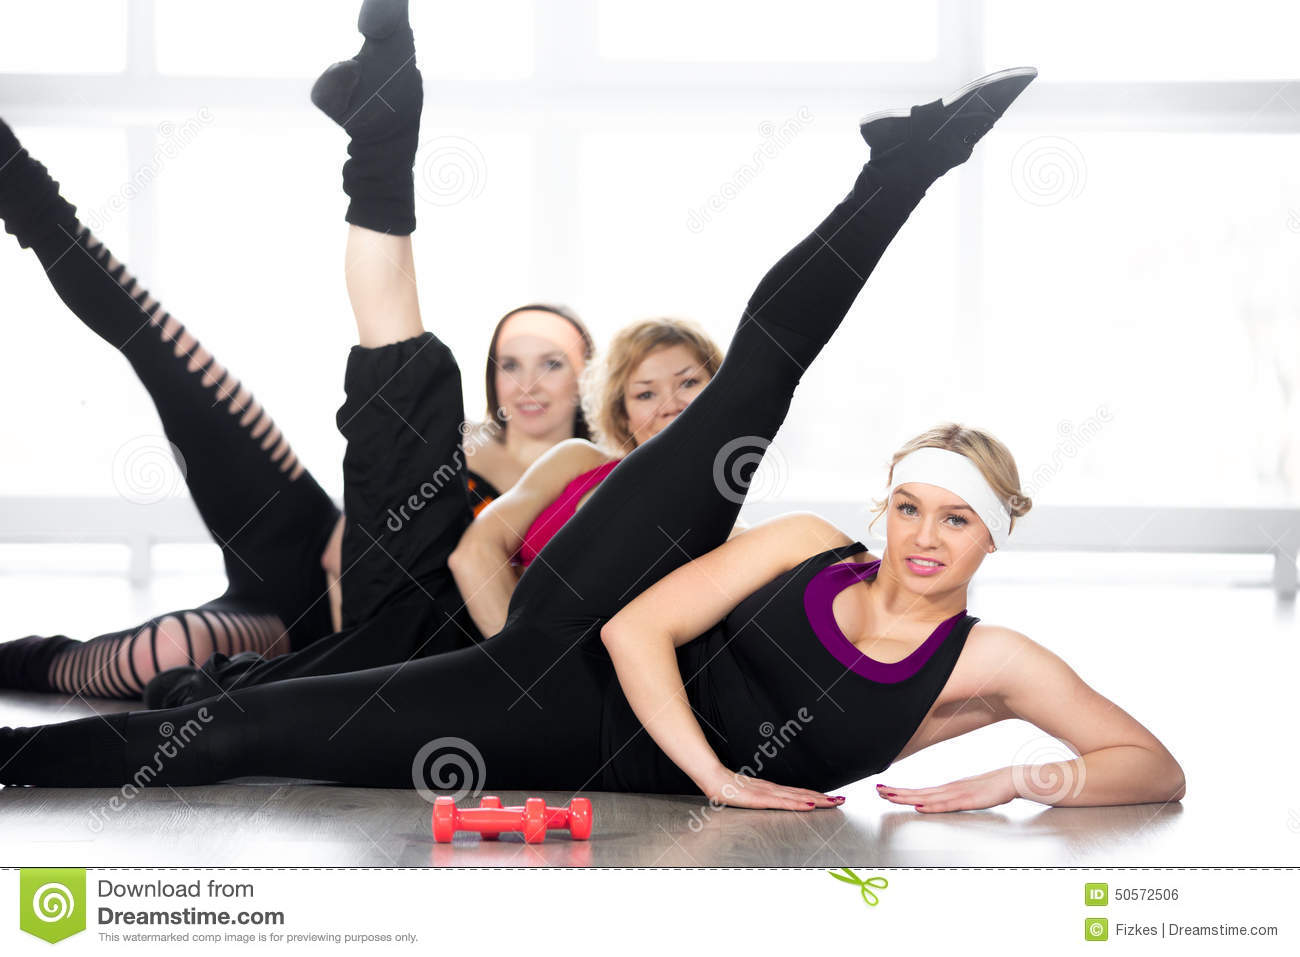 The excellent Nude women doing pilates